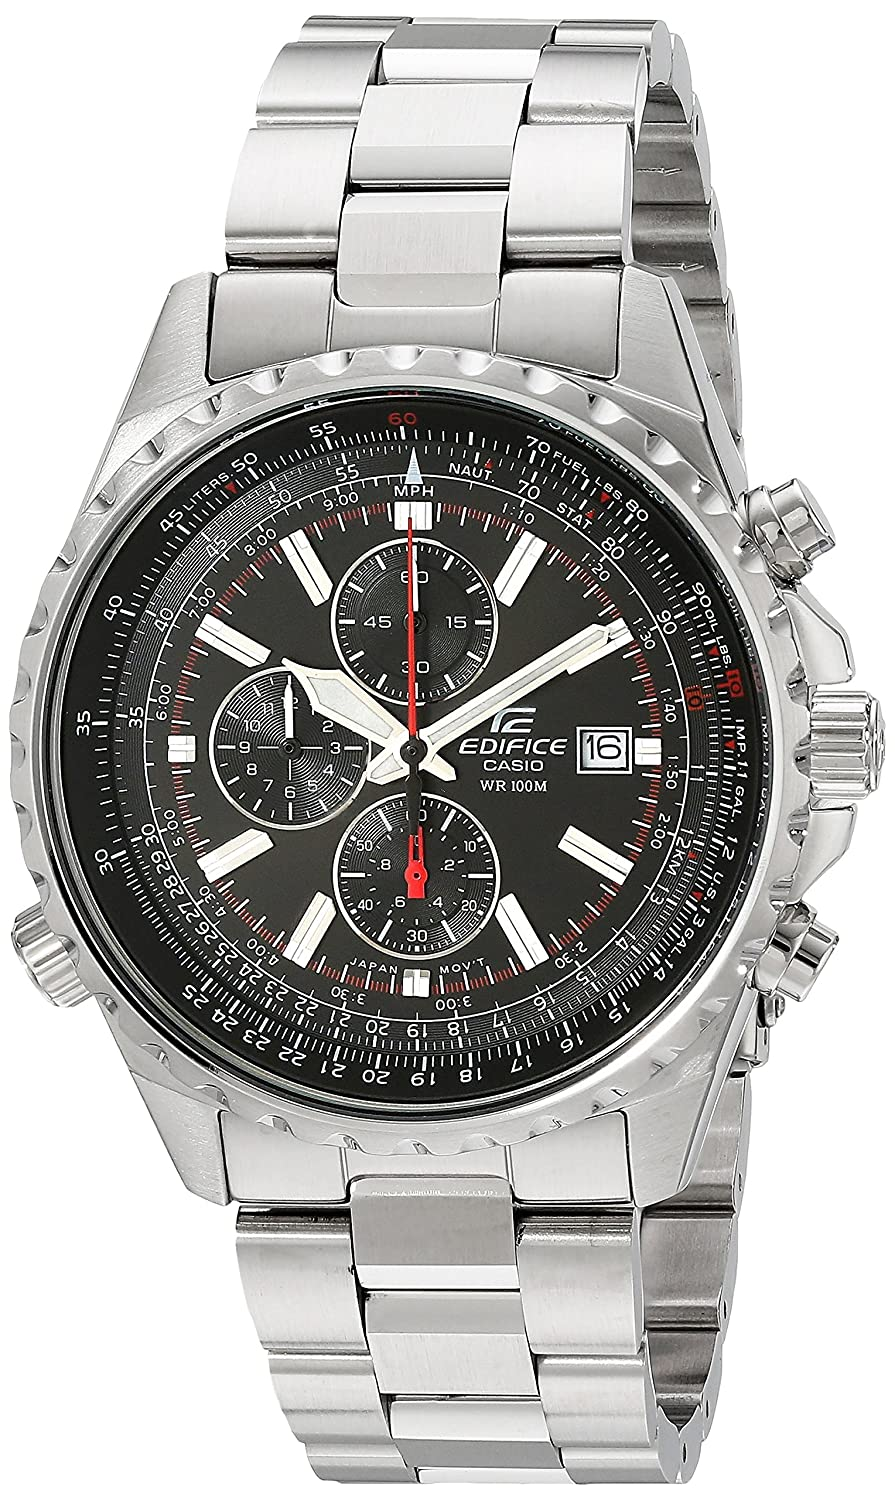 73f8ab104b4 Amazon.com  Casio Men s Edifice EF527D-1AV Stainless Steel Multi-Function  Watch  Casio  Watches